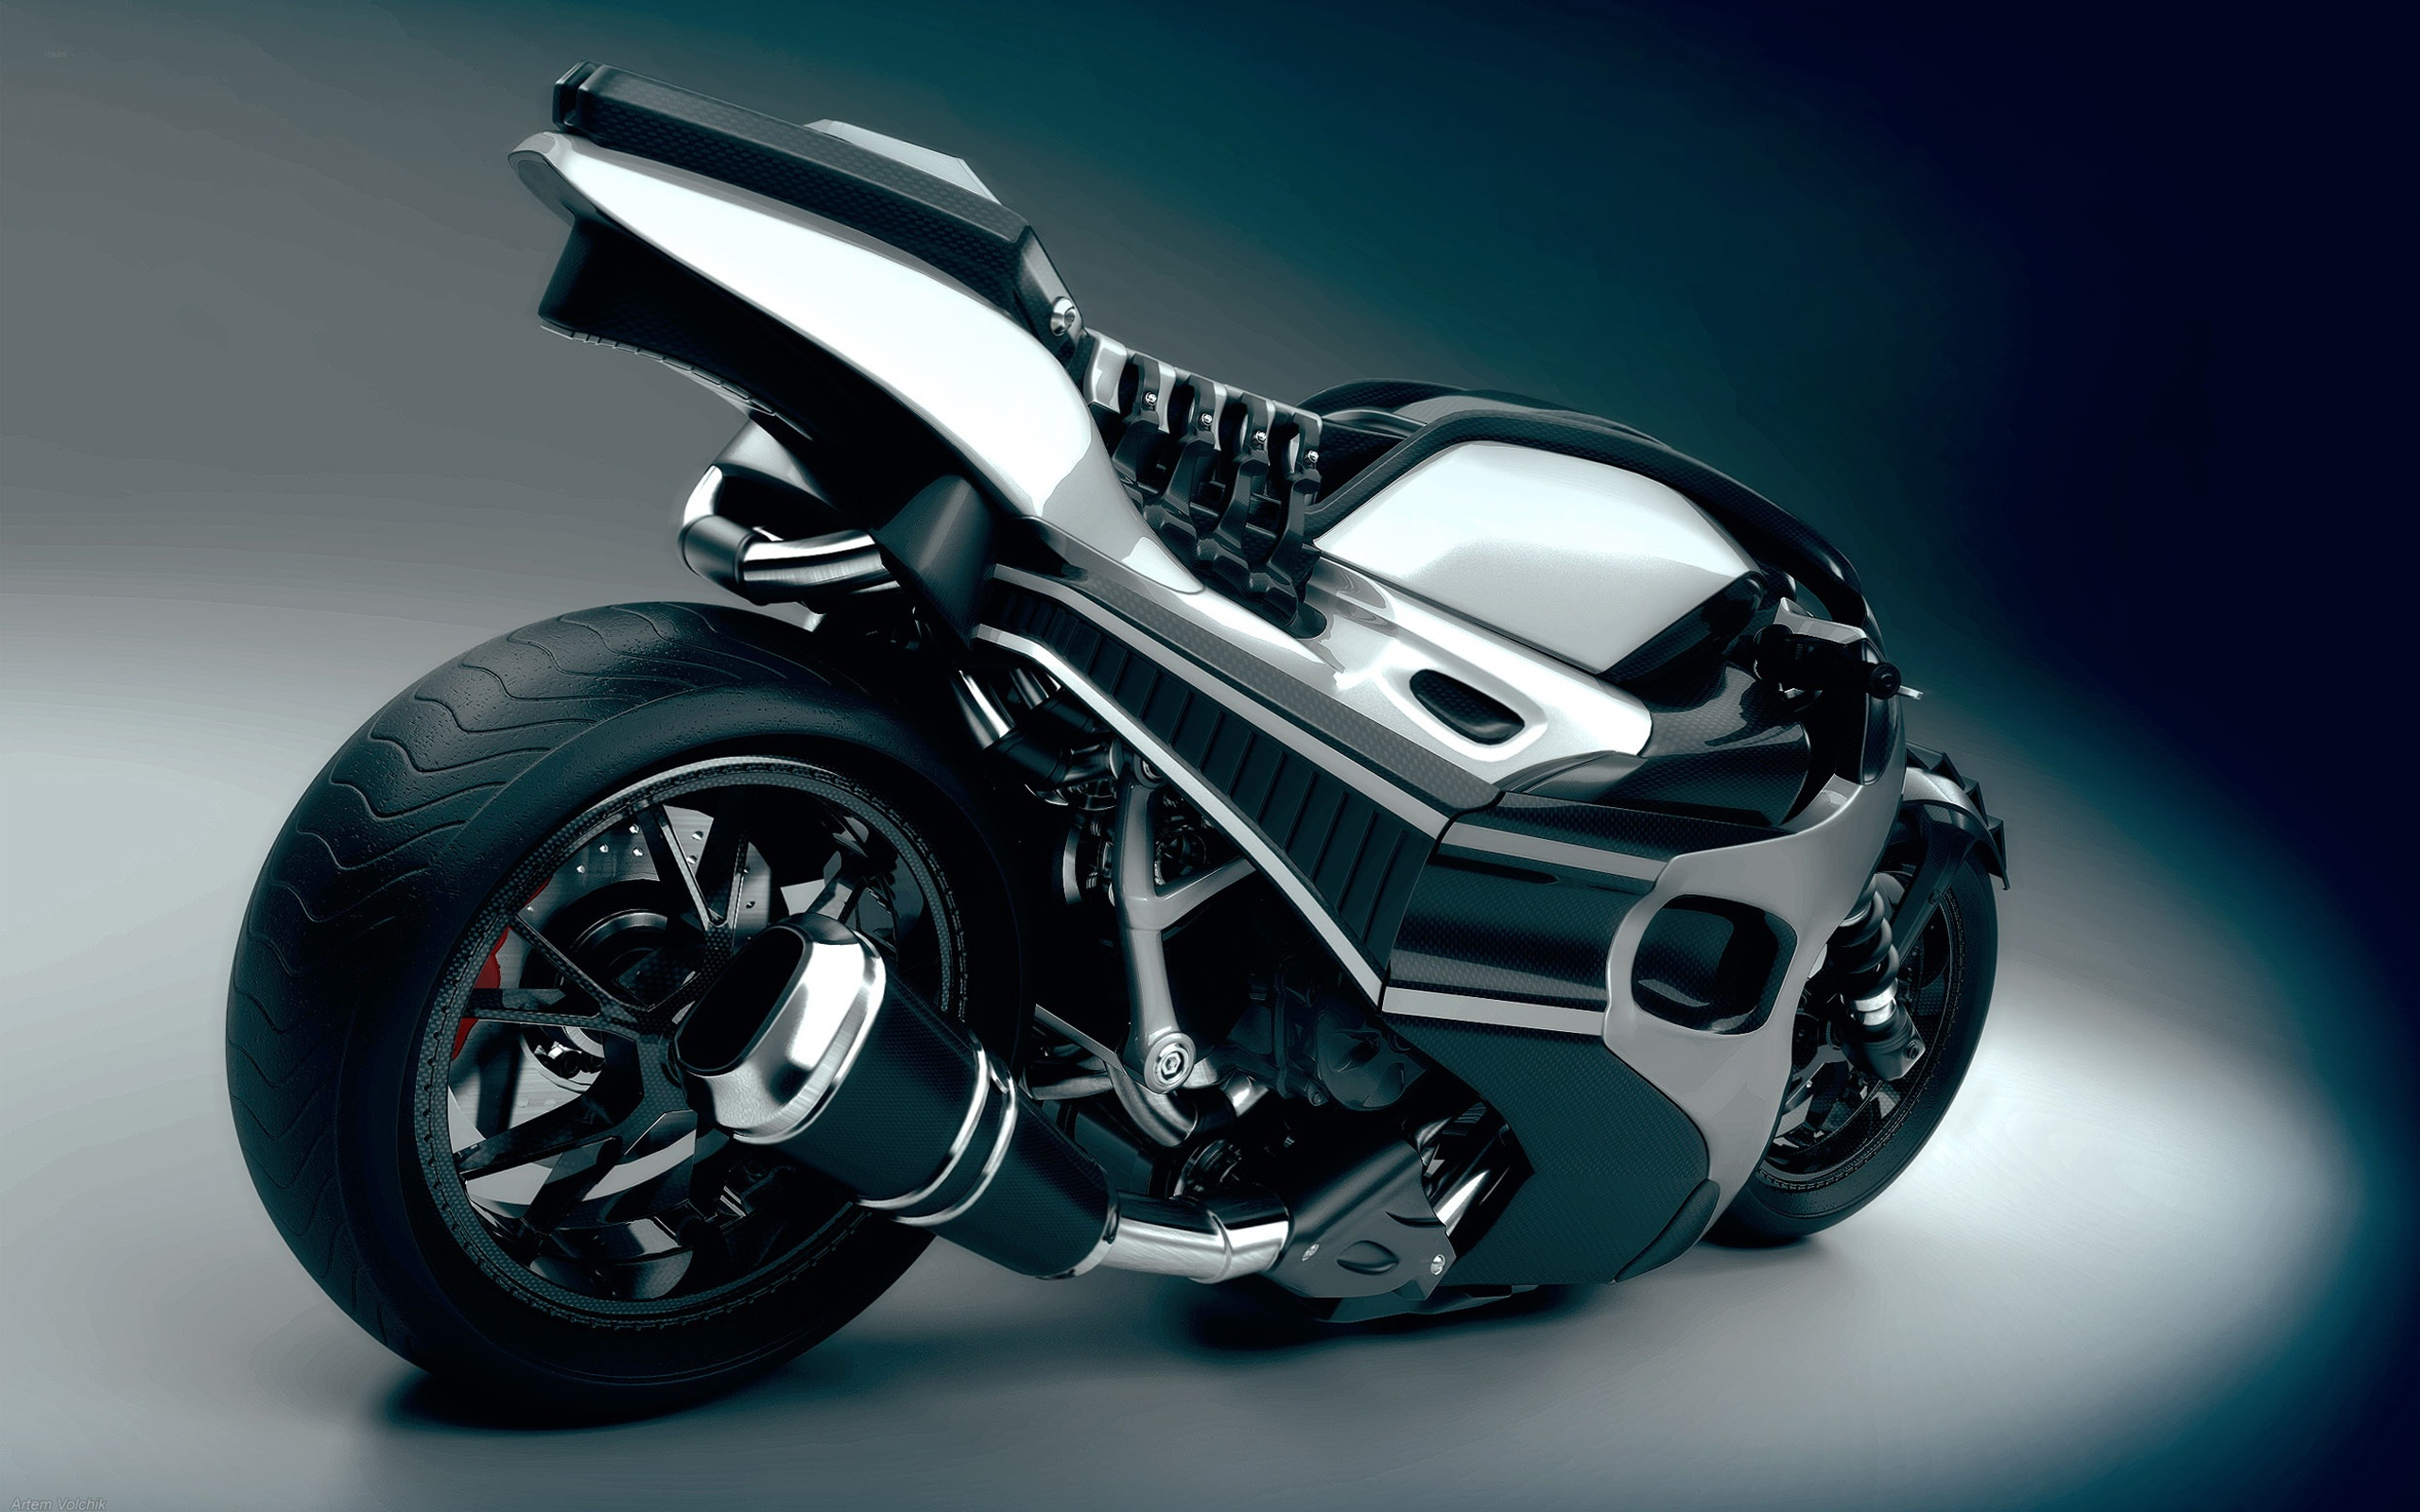 Concept Superbike Wallpapers In Jpg Format For Free Download